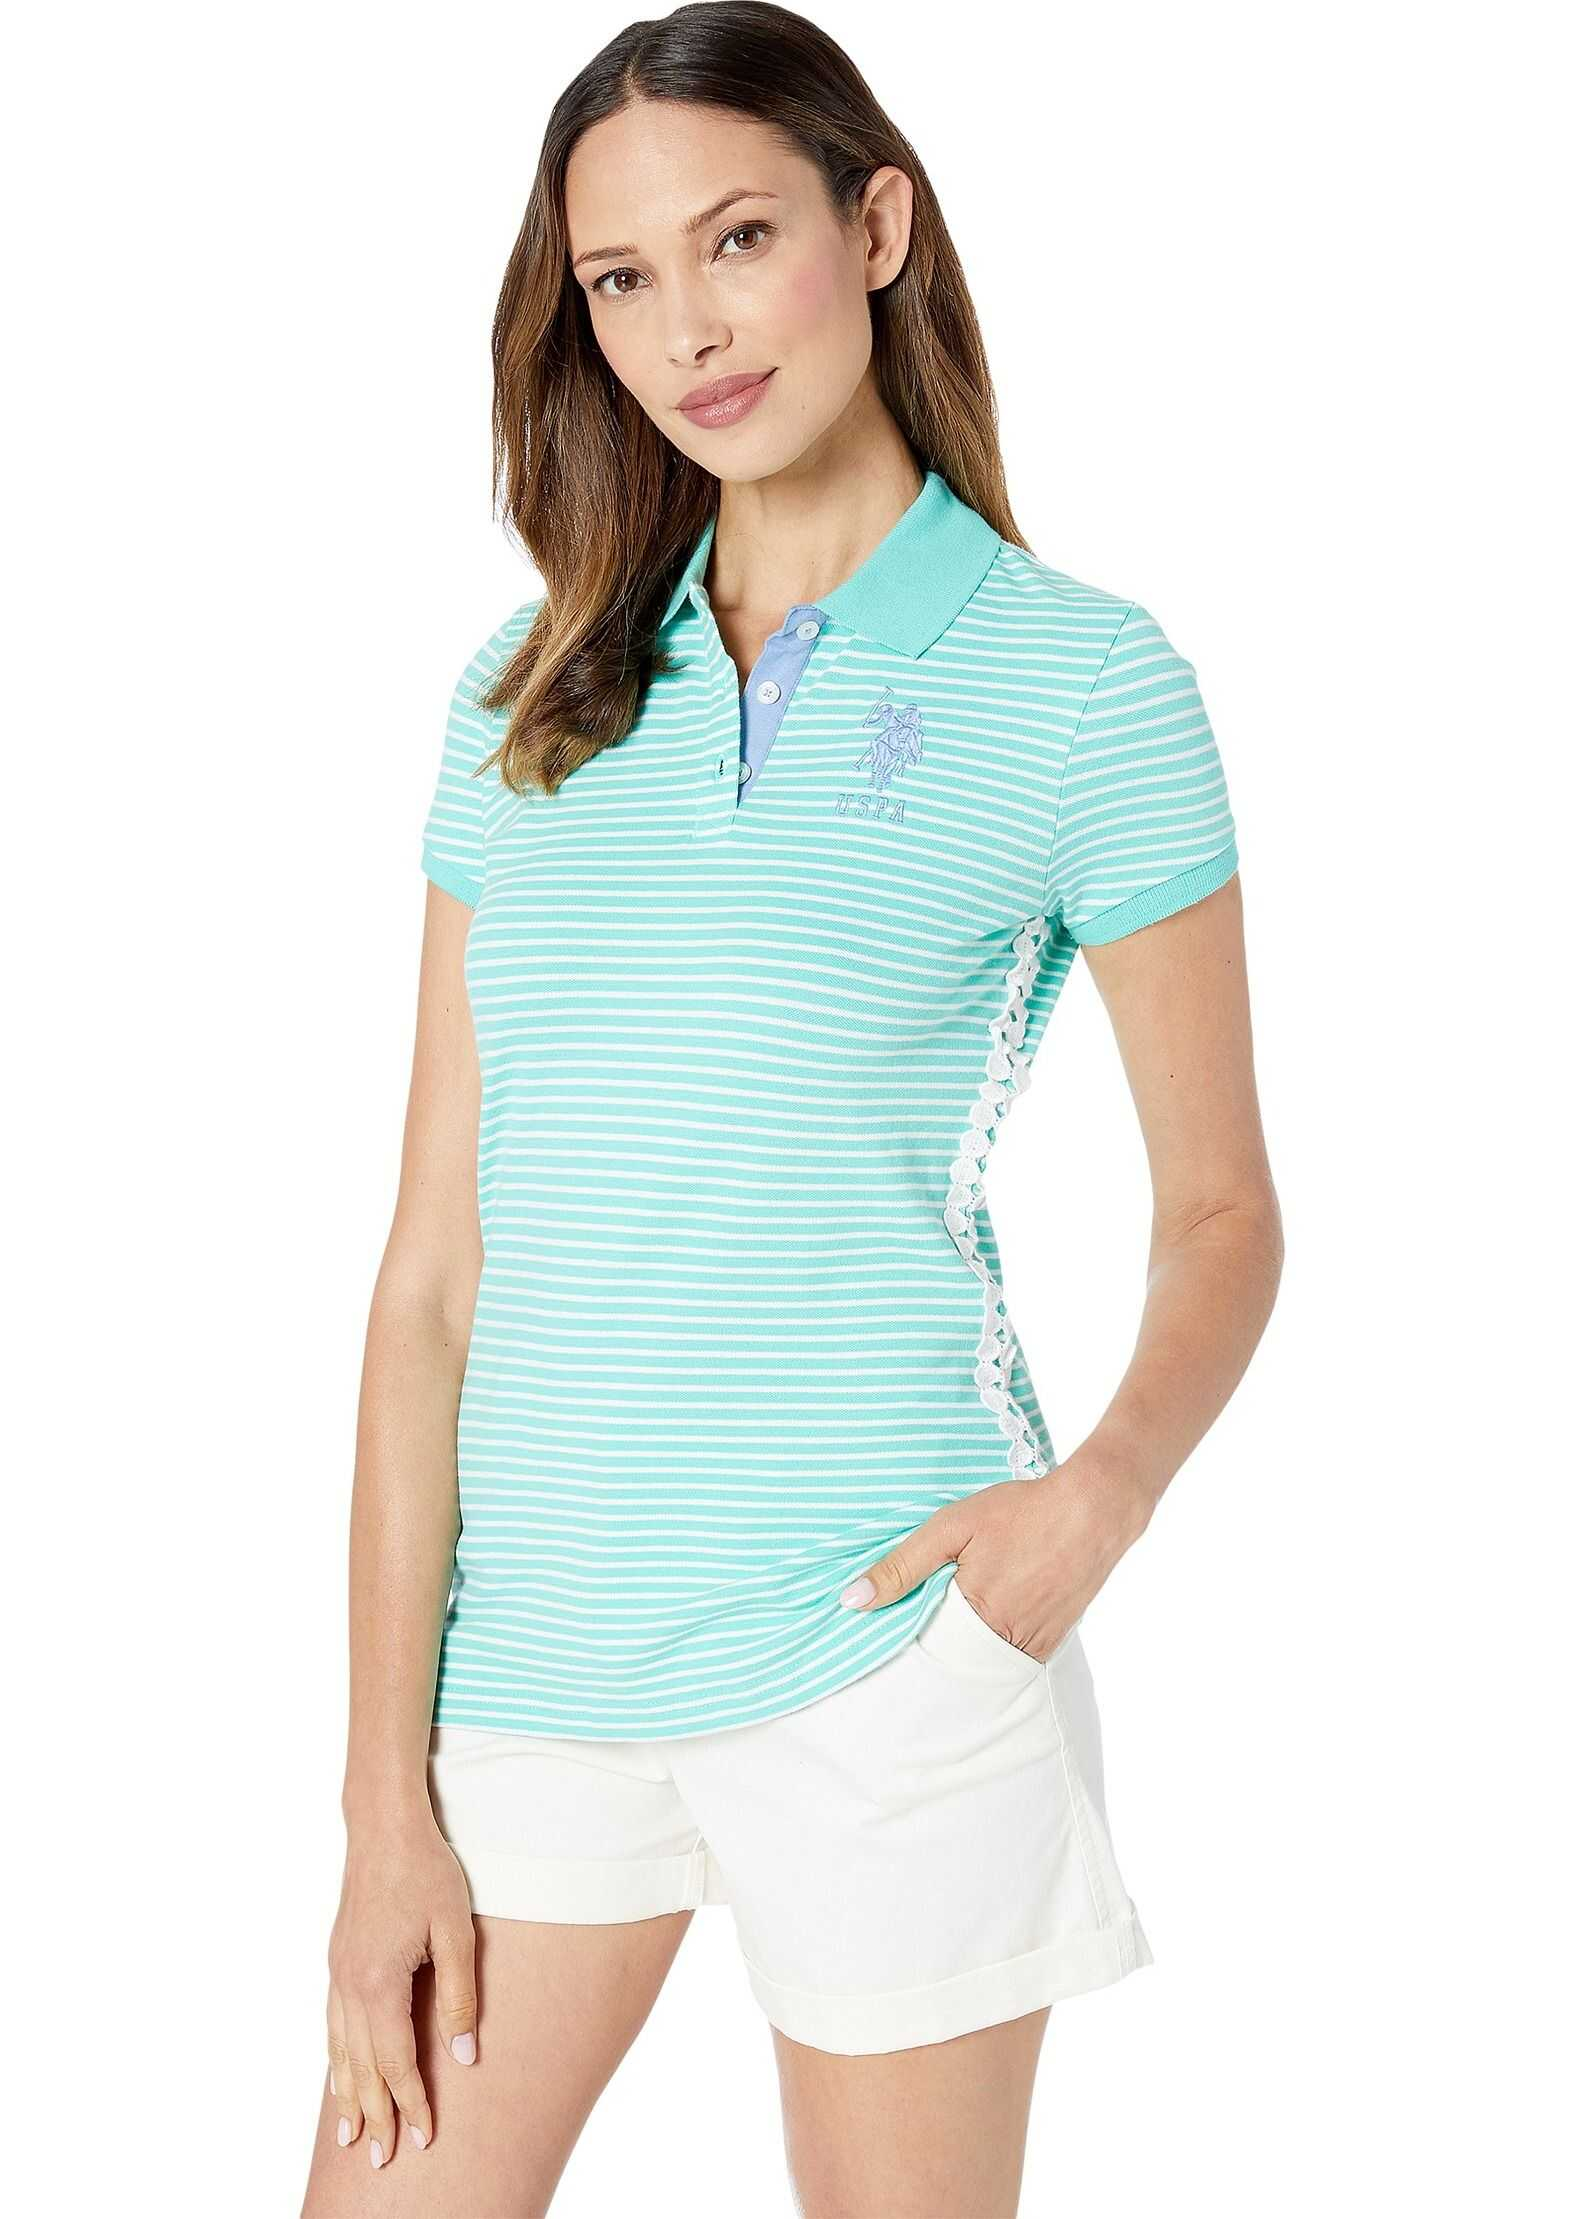 U.S. POLO ASSN. Stripe w/ Lace Side Polo Cool Breeze